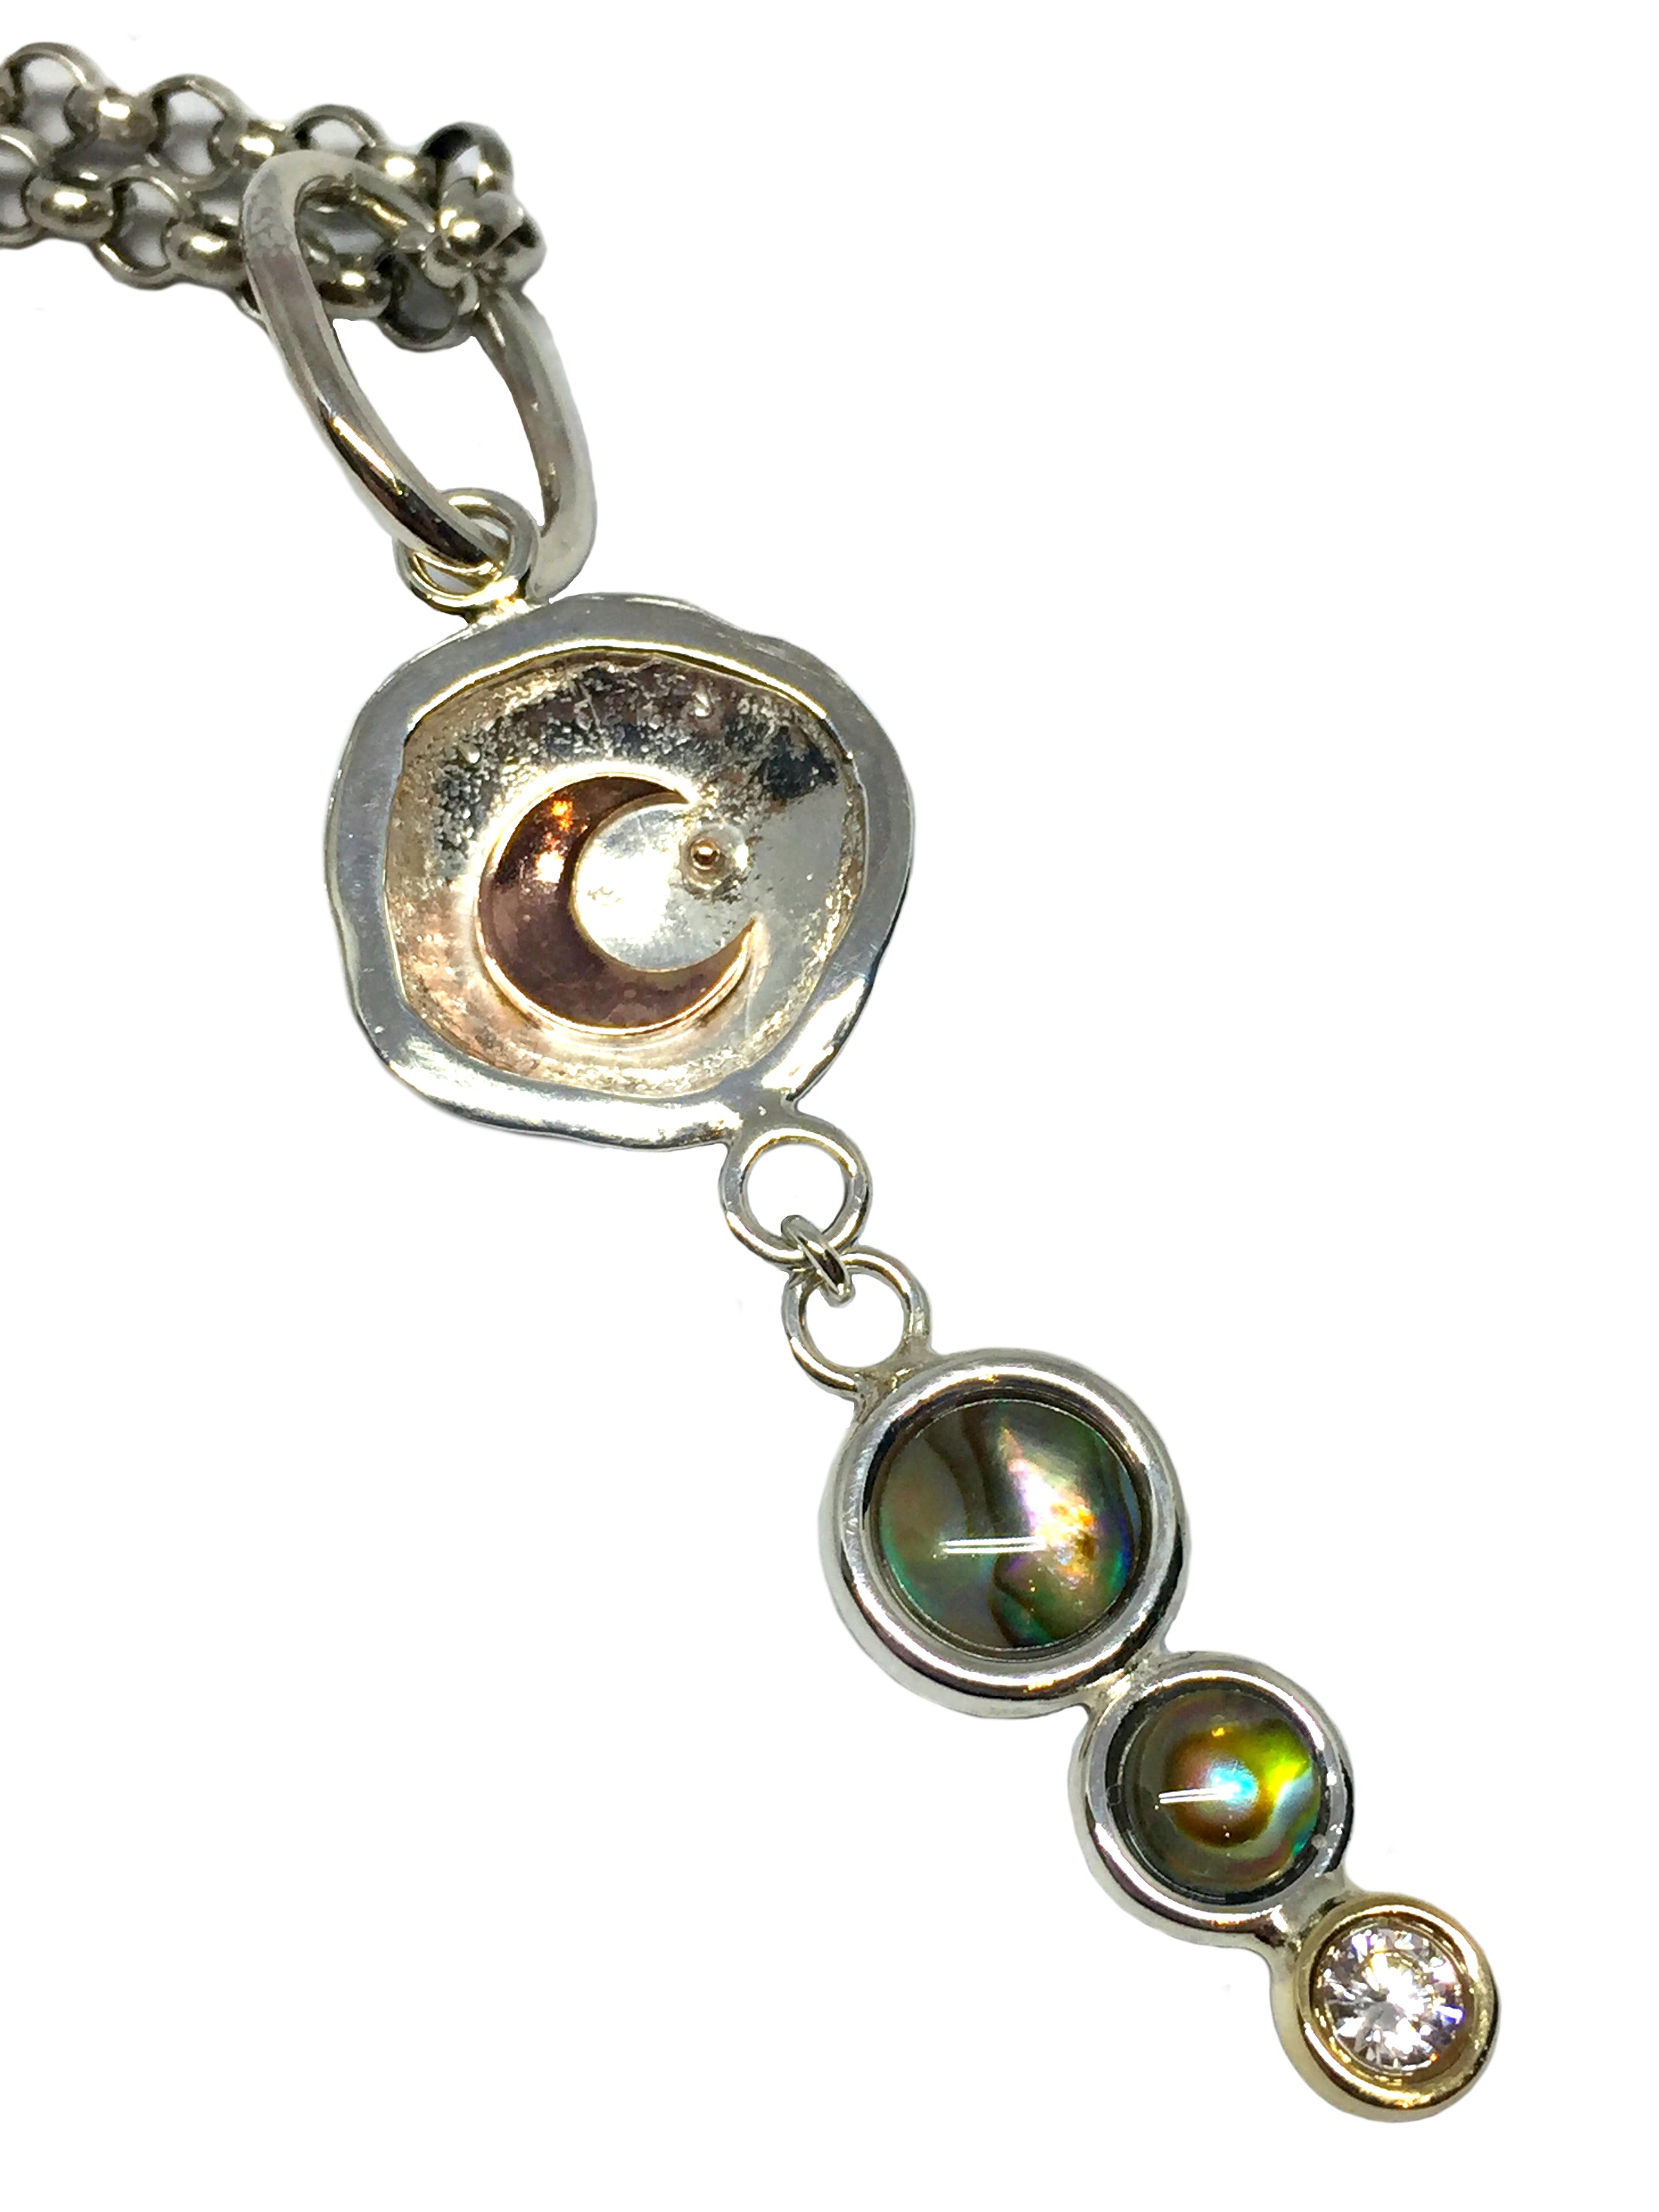 Karyn Chopik Silver, Bronze, Pink Bronze, and Abalone Pendant.  Chain not included | Effusion Art Gallery + Cast Glass Studio, Invermere BC